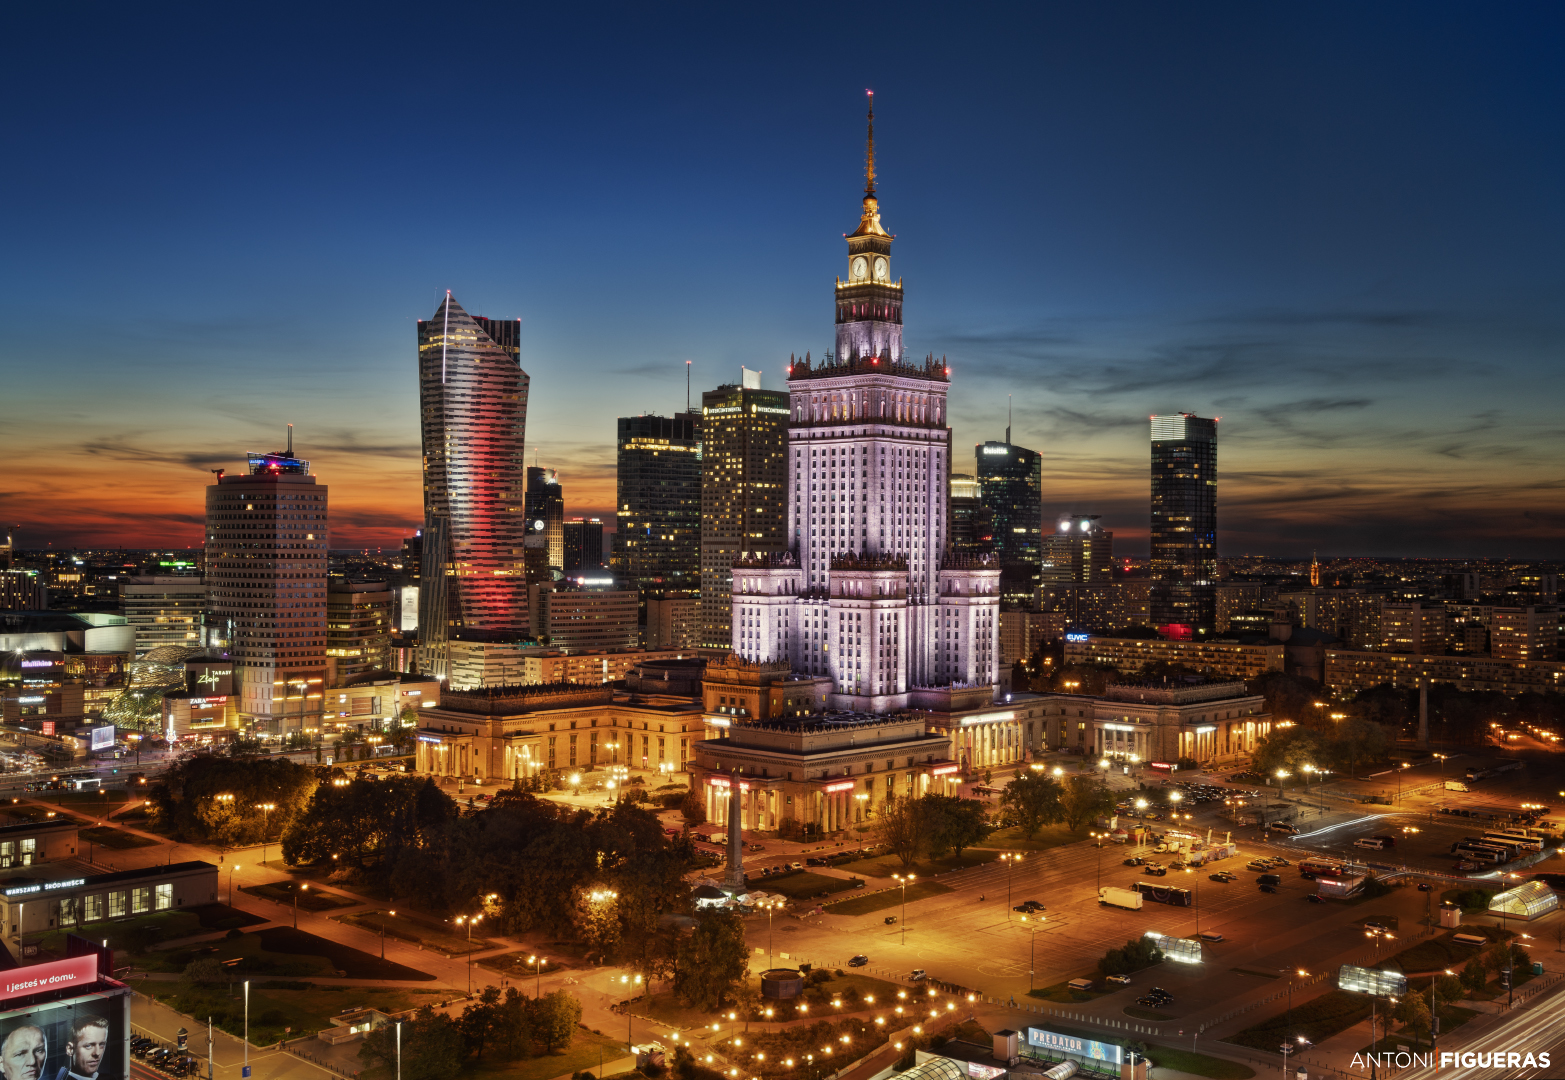 Palace of Culture and Science, Poland